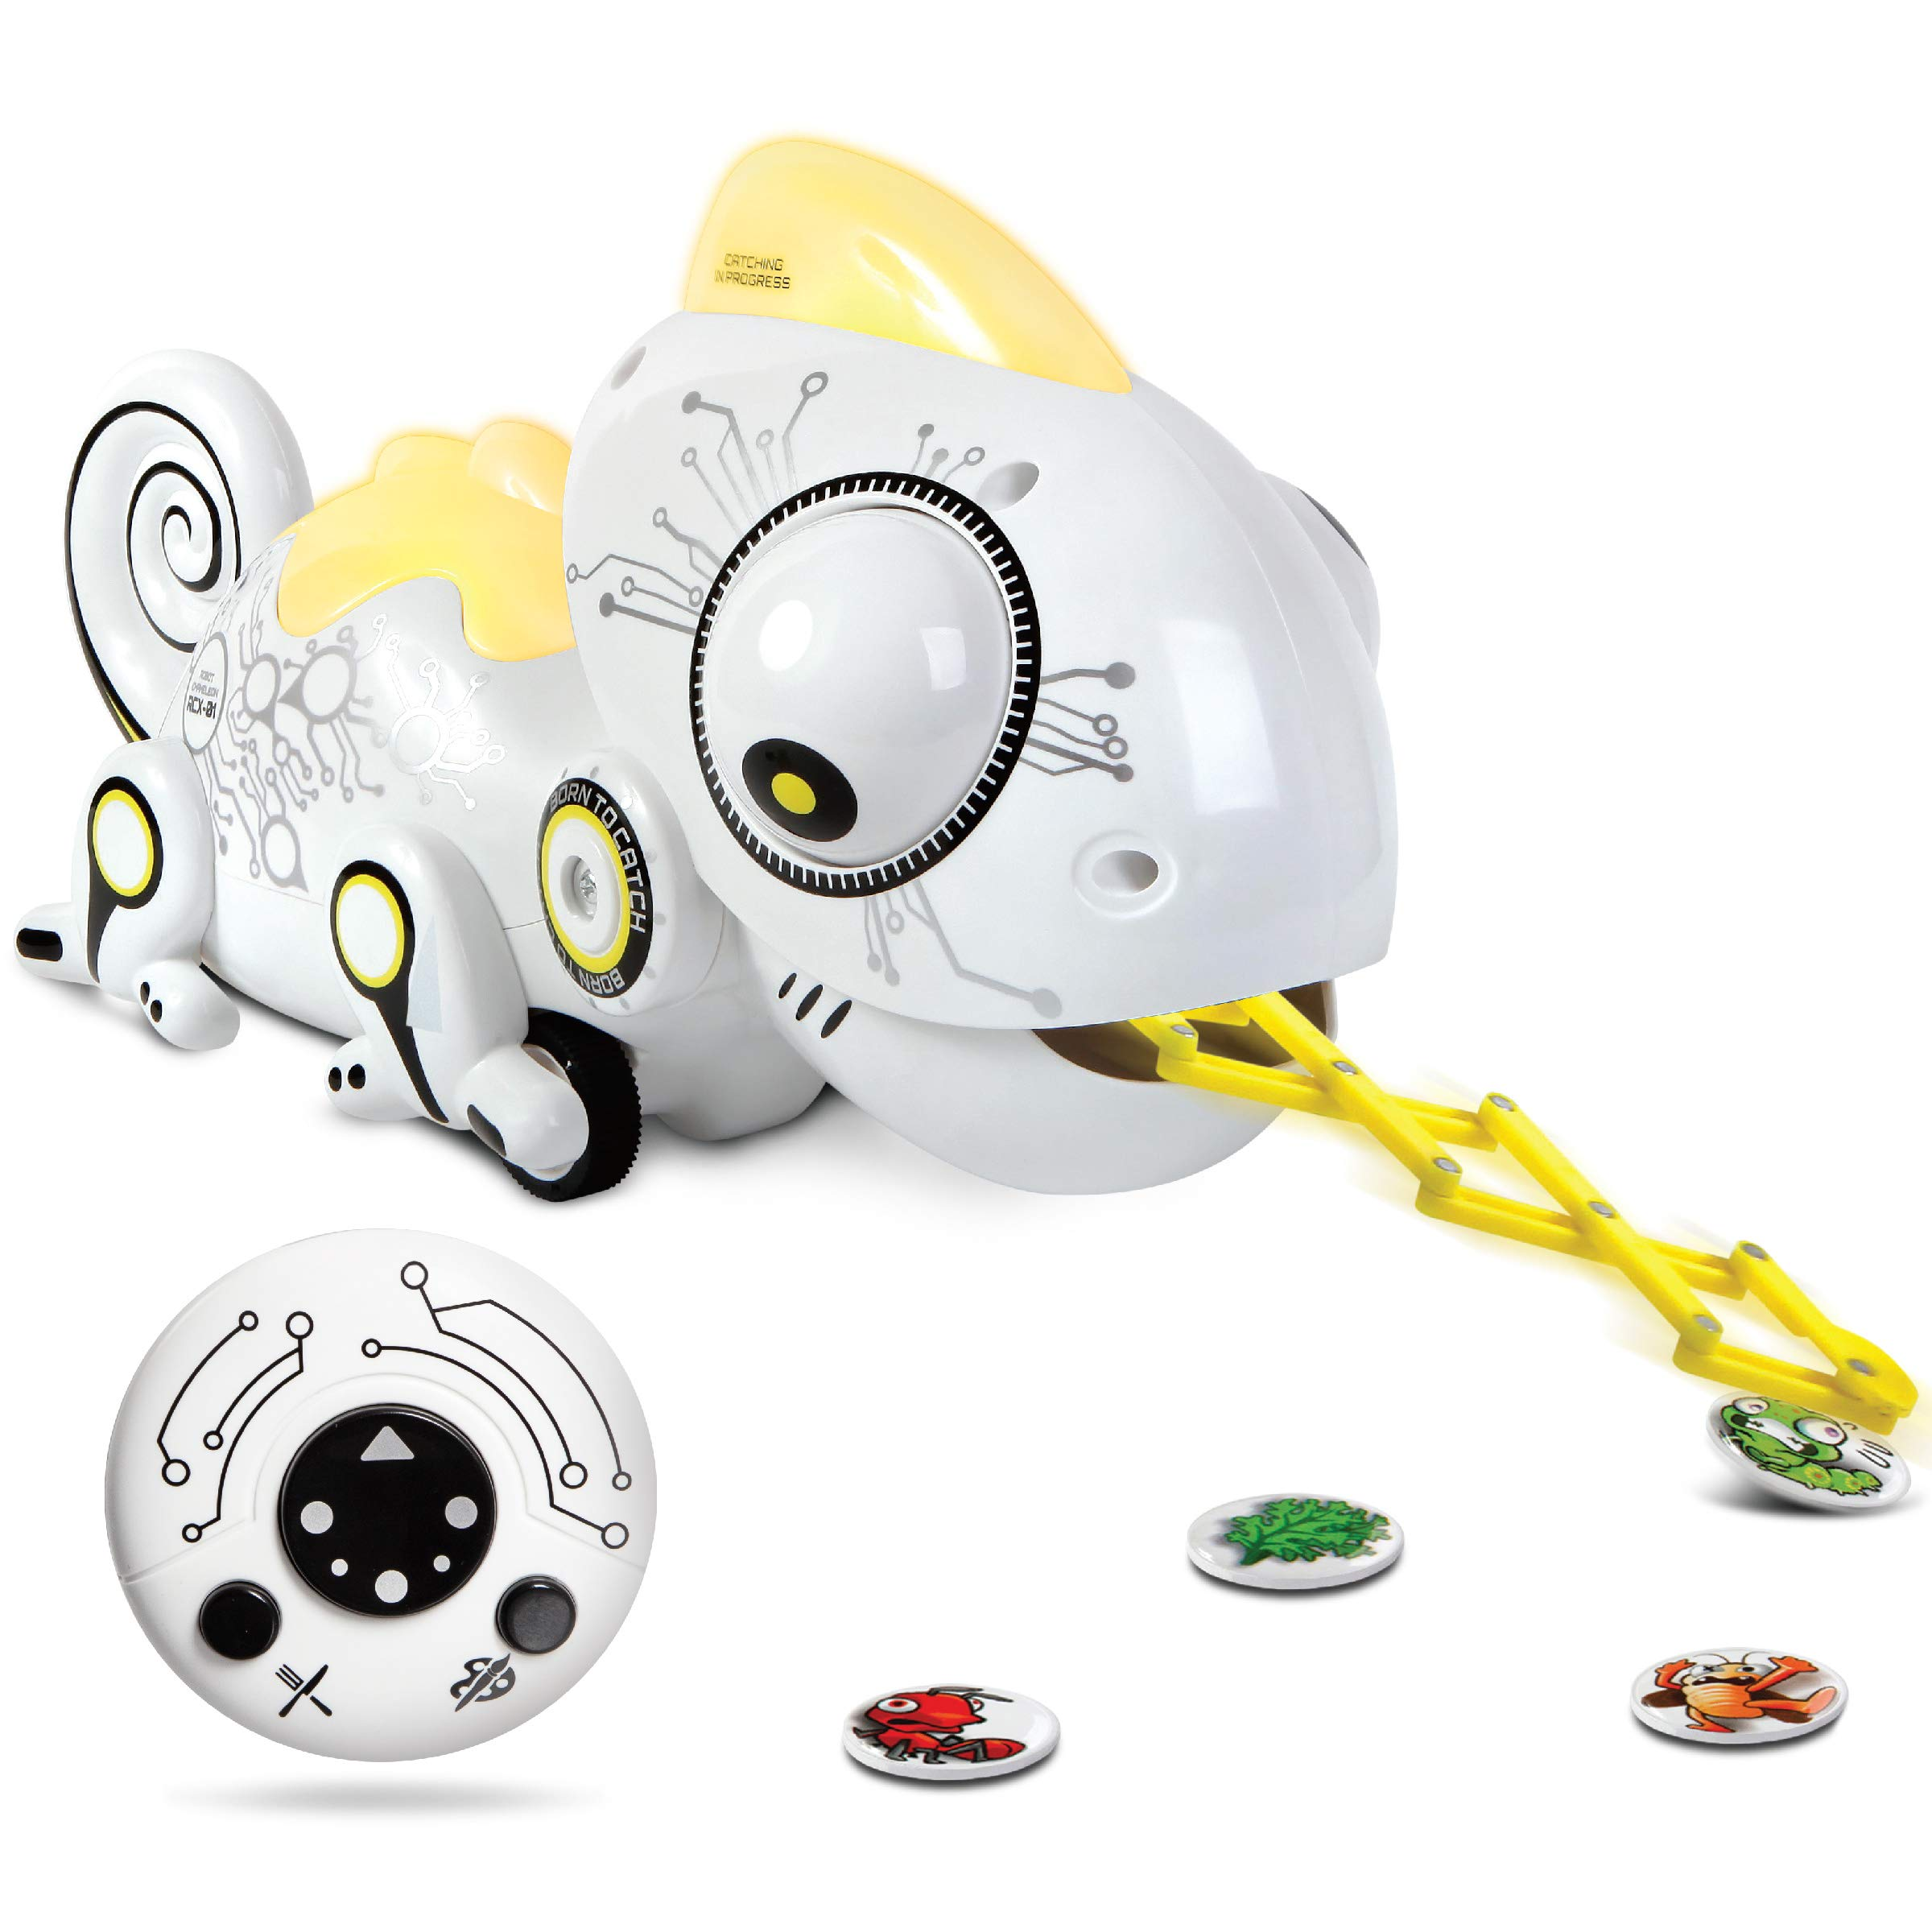 Sharper Image Color Changing RC Robotic Chameleon Toy with Multi Colored LED Lights and Bug Catching Action; Multi-Directional Remote Control & Extendable Tongue with Animated Eyes and Tail by Sharper Image (Image #1)